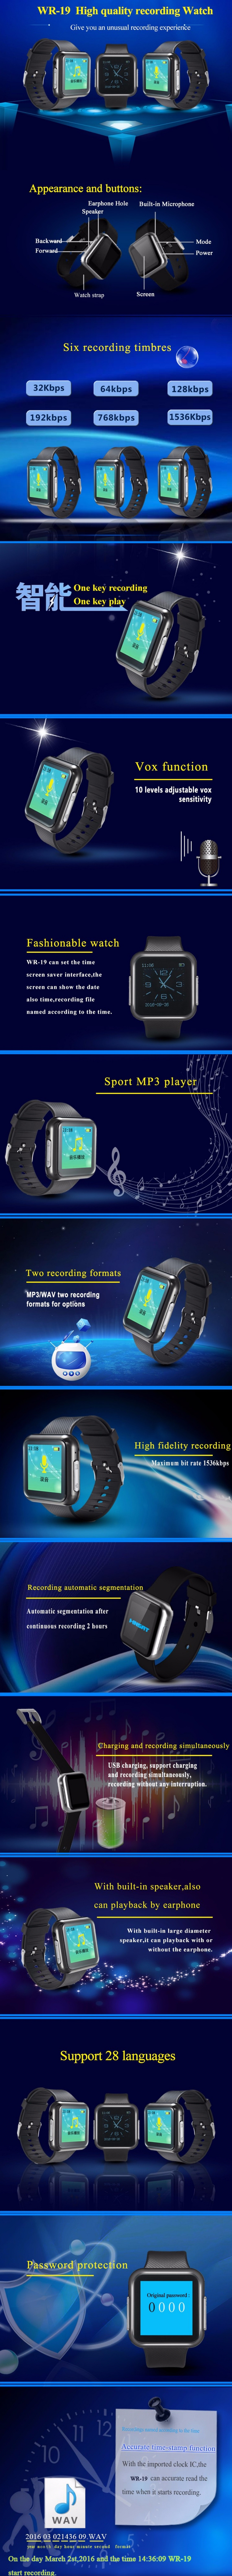 Hnsat WR-19 8GB Sport Watch Voice Recorder with 6 Modes & Password Protection